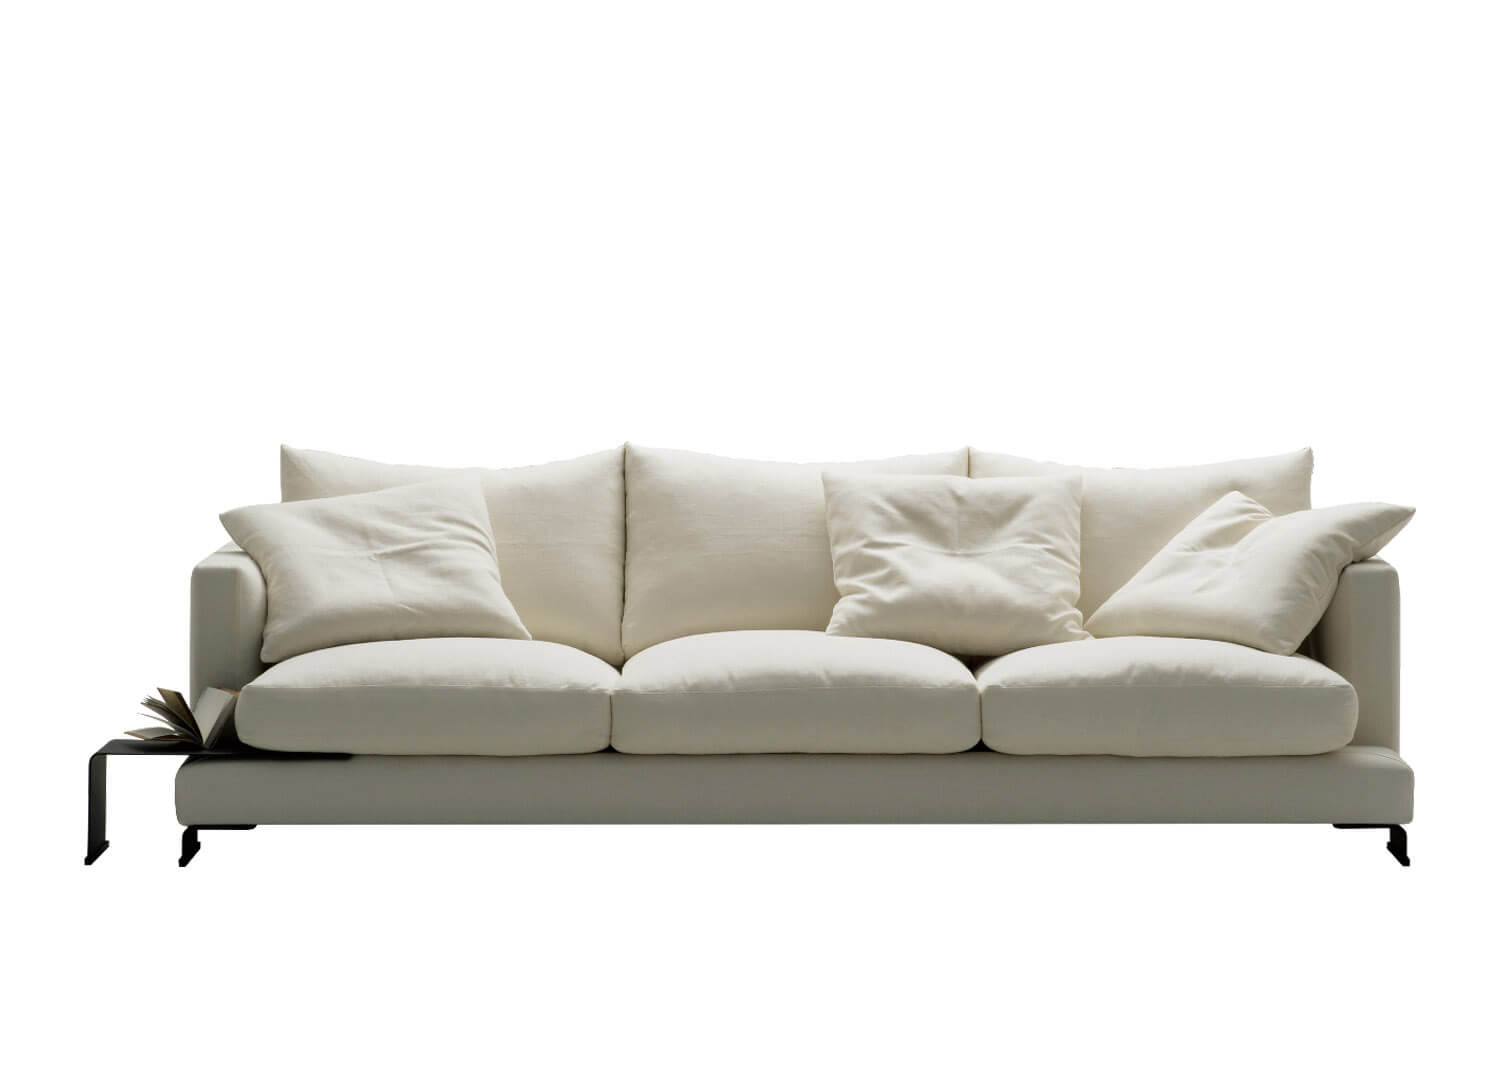 Lazytime Plus Sofa By Camerich Est Living Design Directory